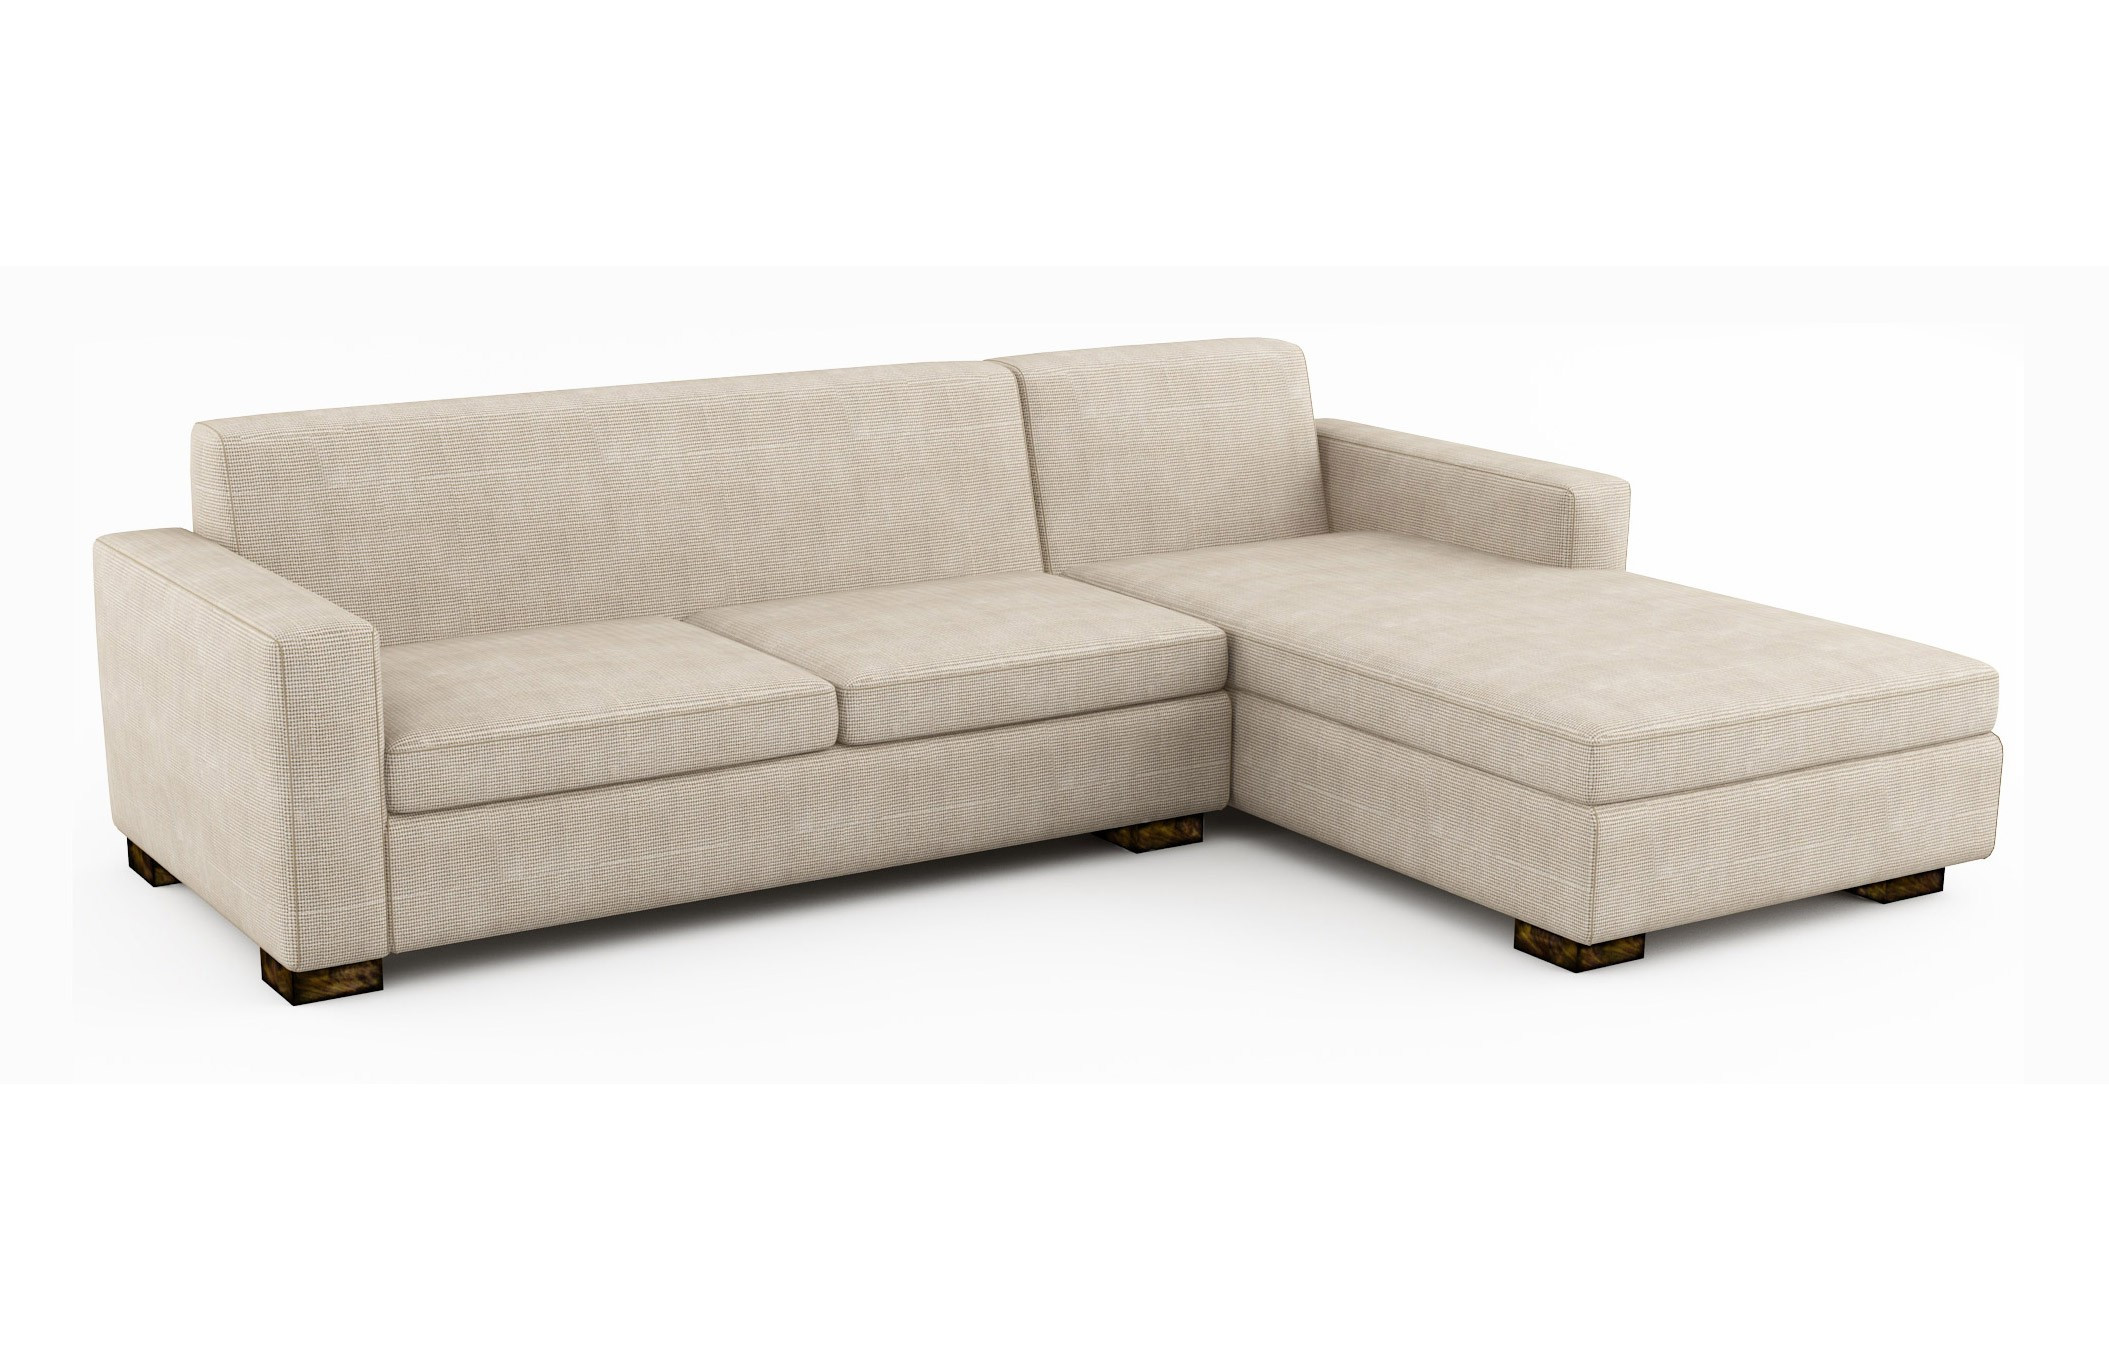 Best ideas about Sofa Bed Sectional . Save or Pin Brenem Chaise Sectional with Sofa Bed Now.